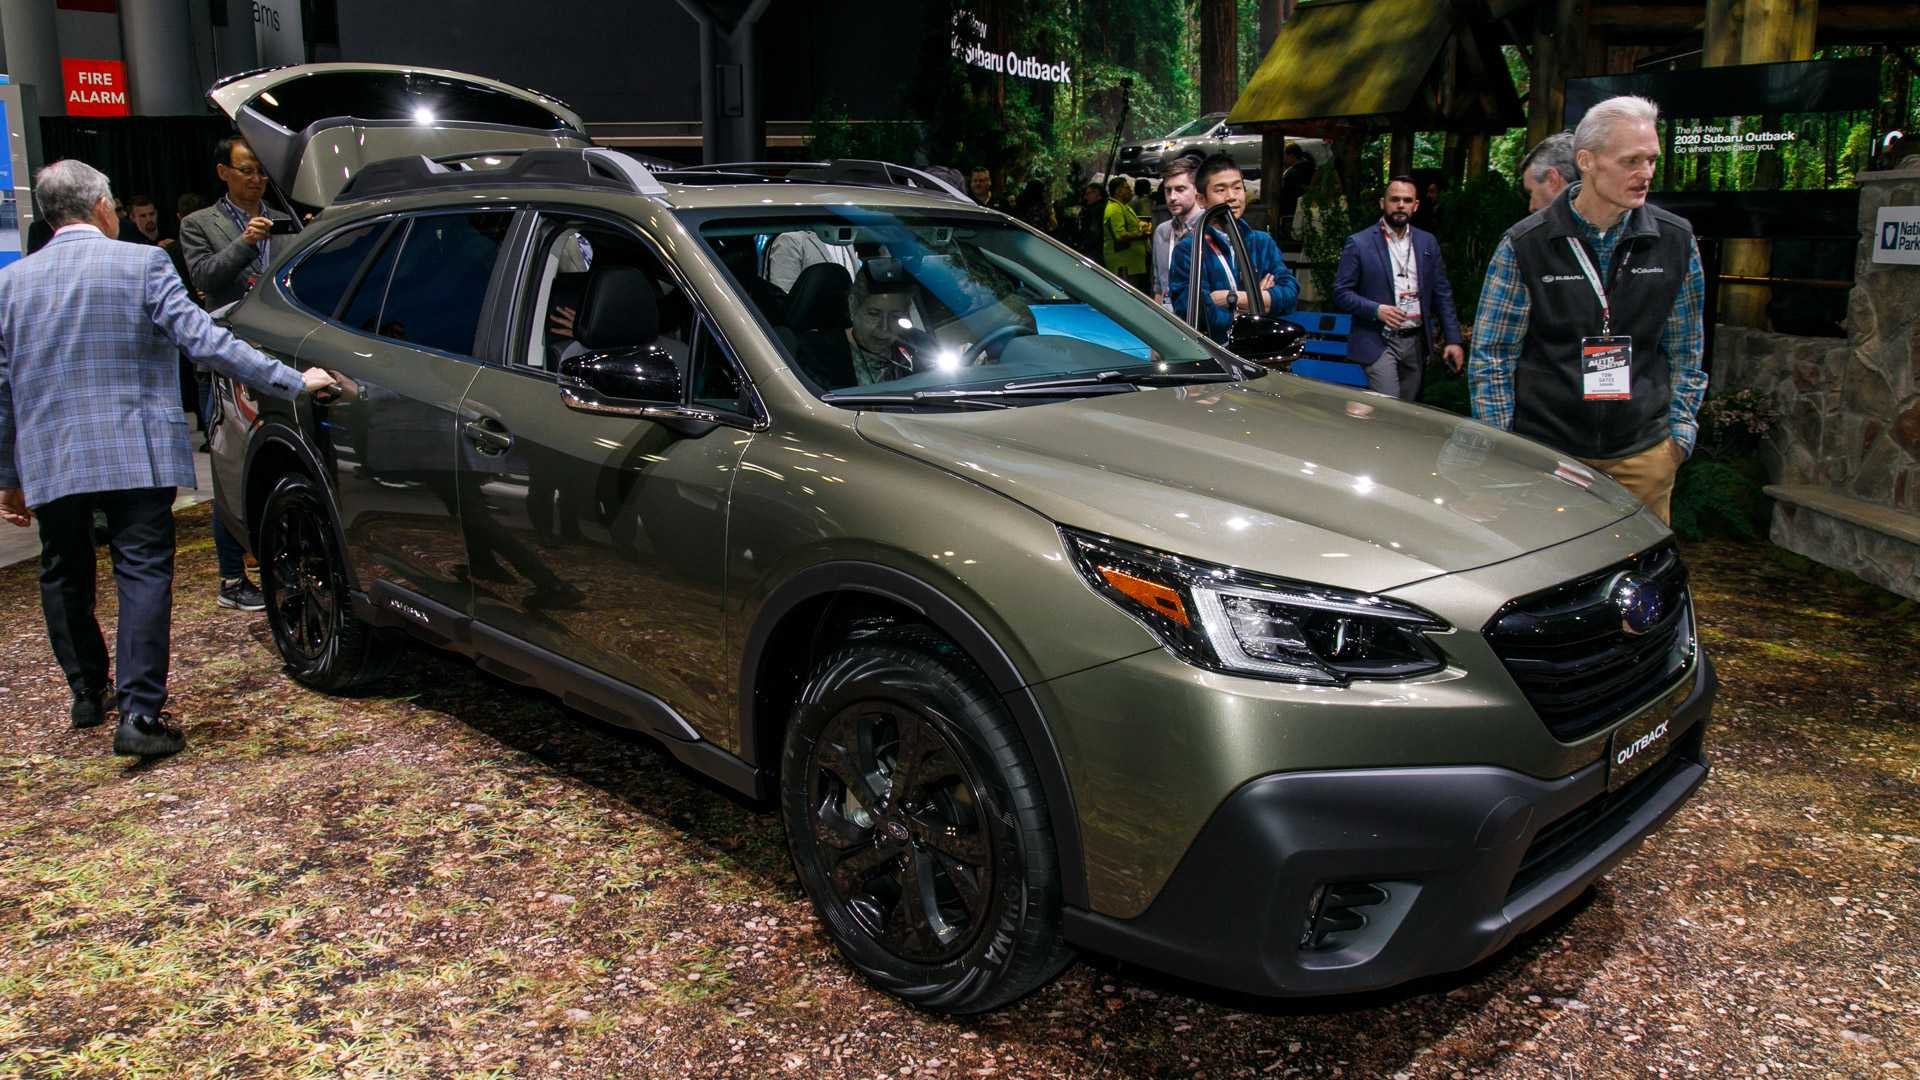 86 A Subaru Outback 2020 Release Date Price And Release Date